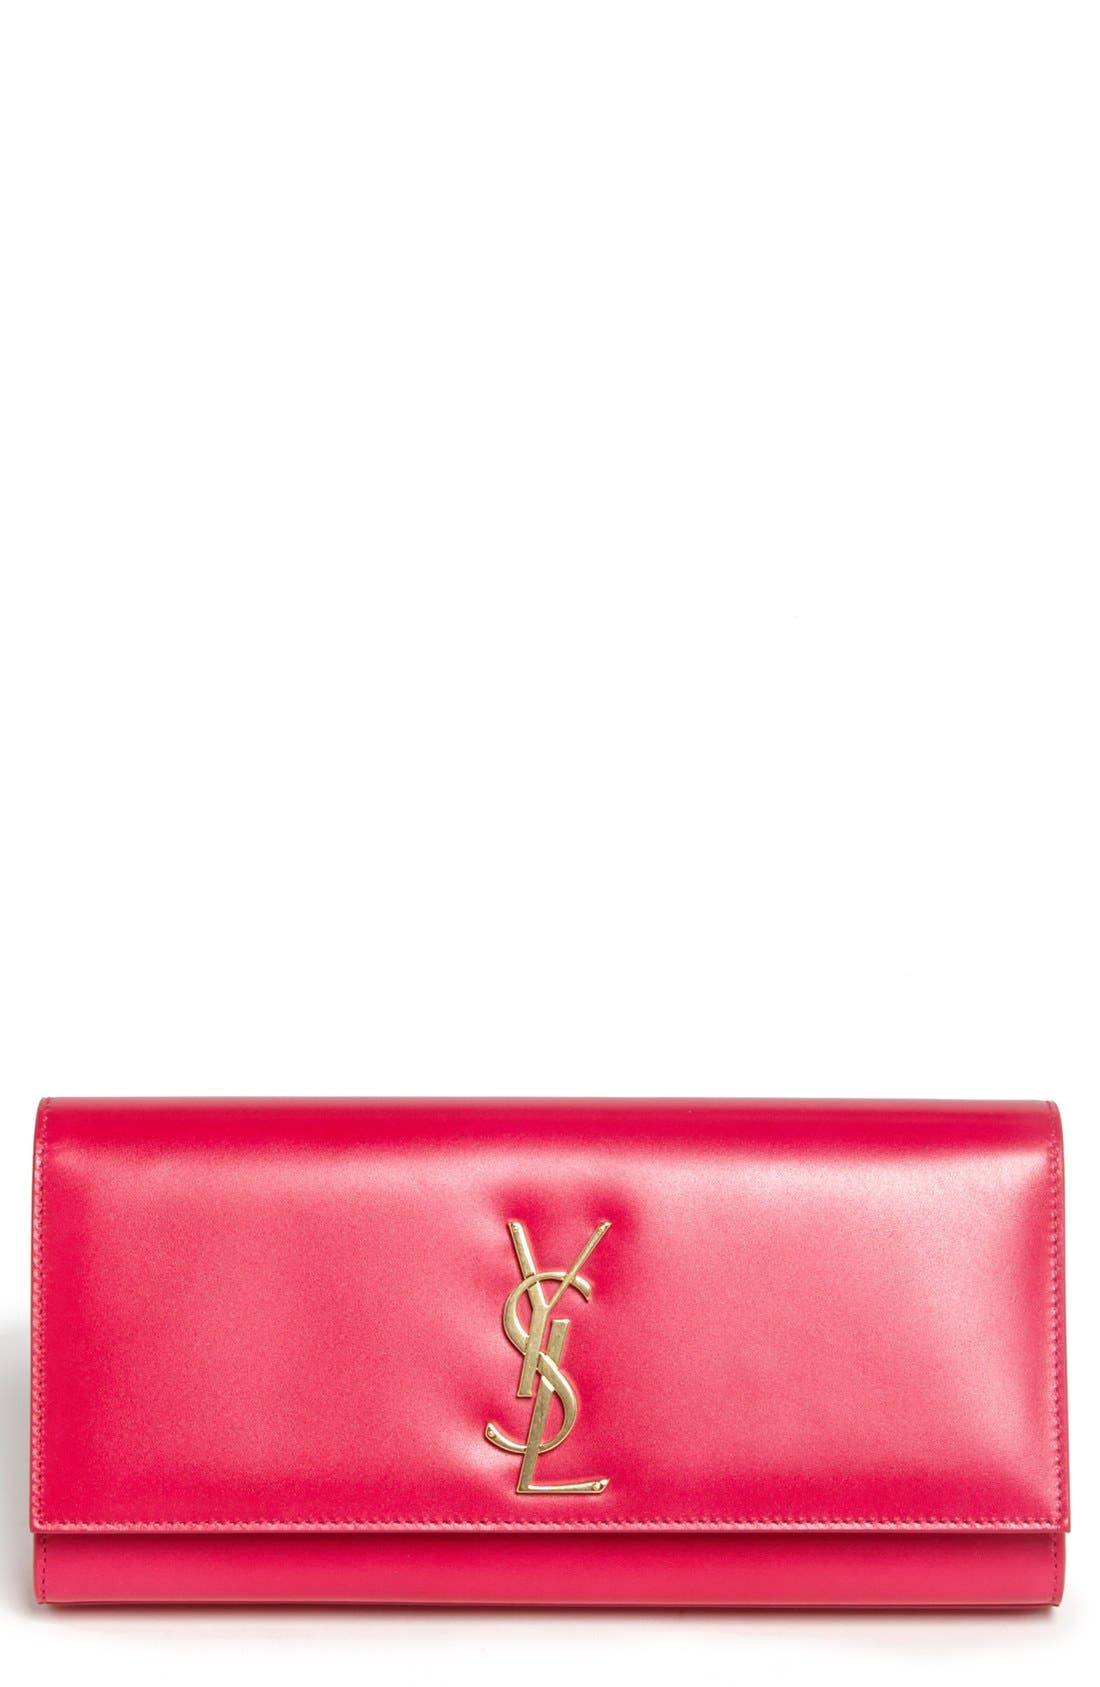 Alternate Image 1 Selected - Saint Laurent 'Cassandre Monet' Leather Clutch